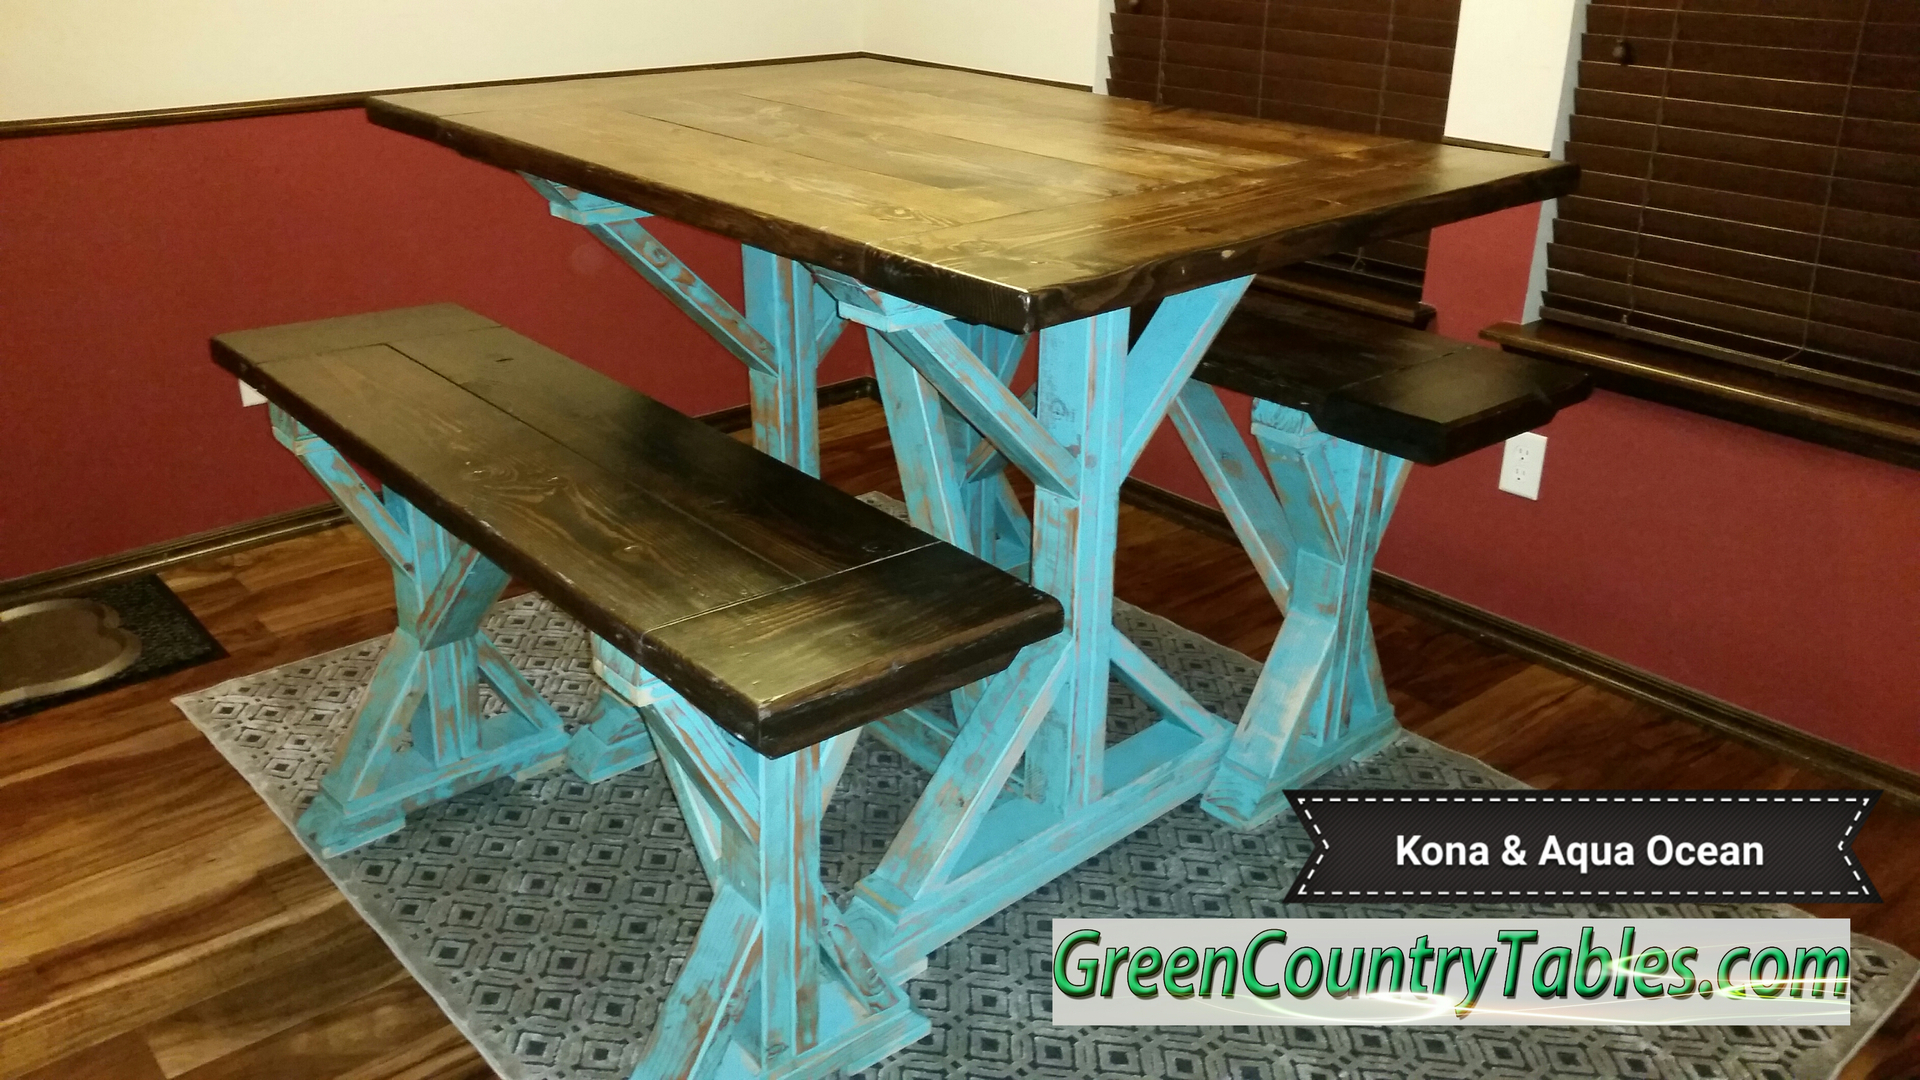 Green Country Tables - Farmhouse Table And Chairs, Farm Tables ...